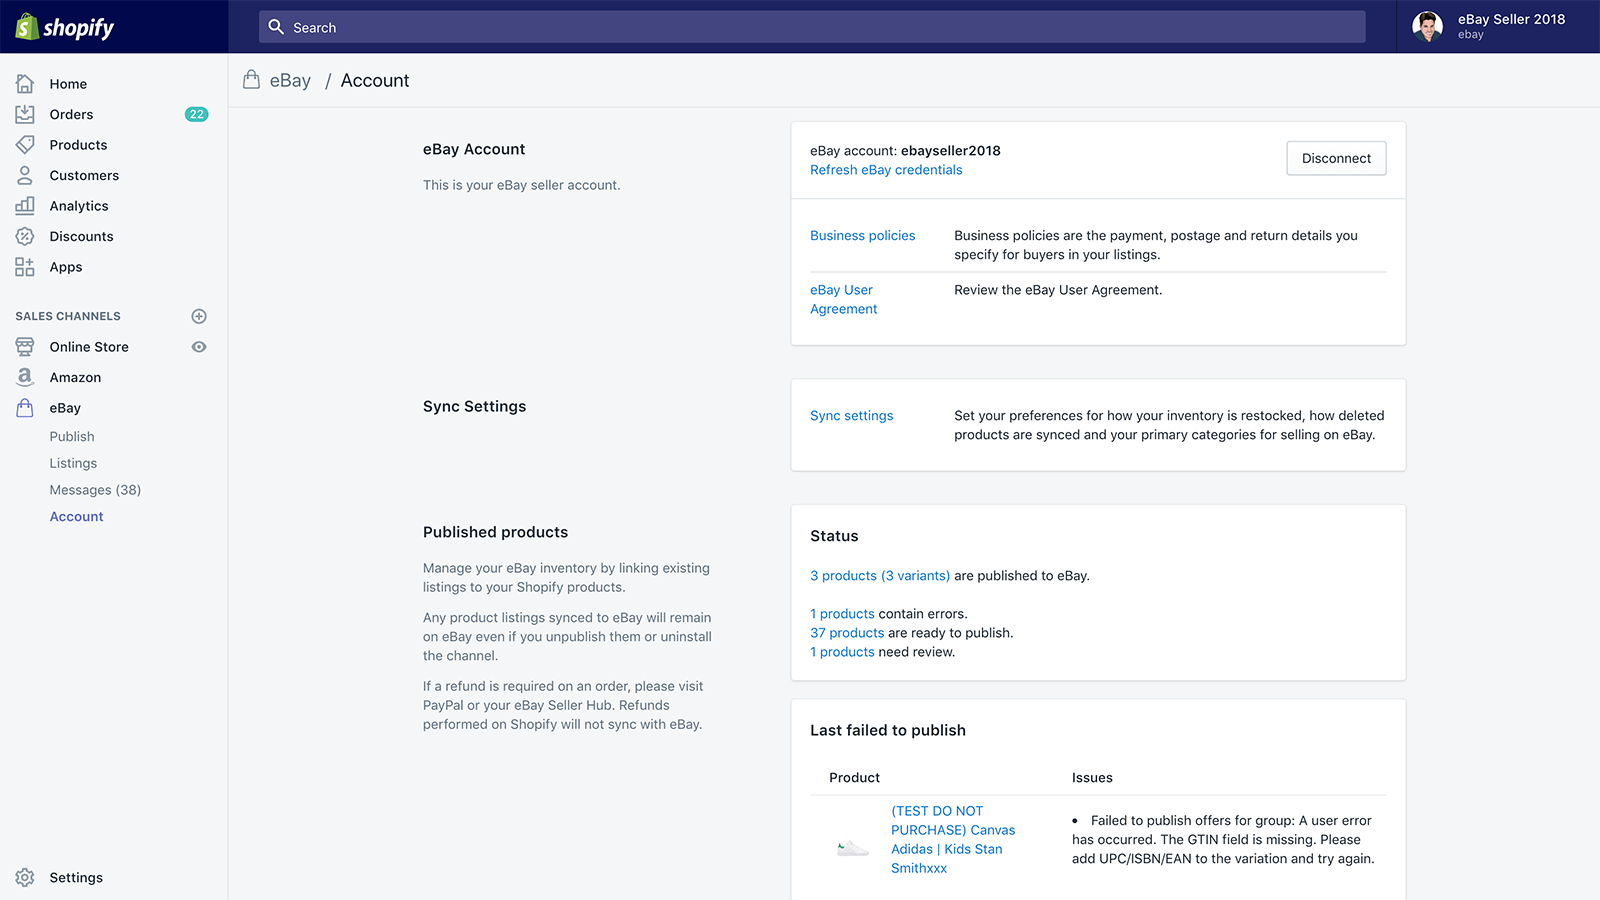 Manage your eBay business policies from inside Shopify